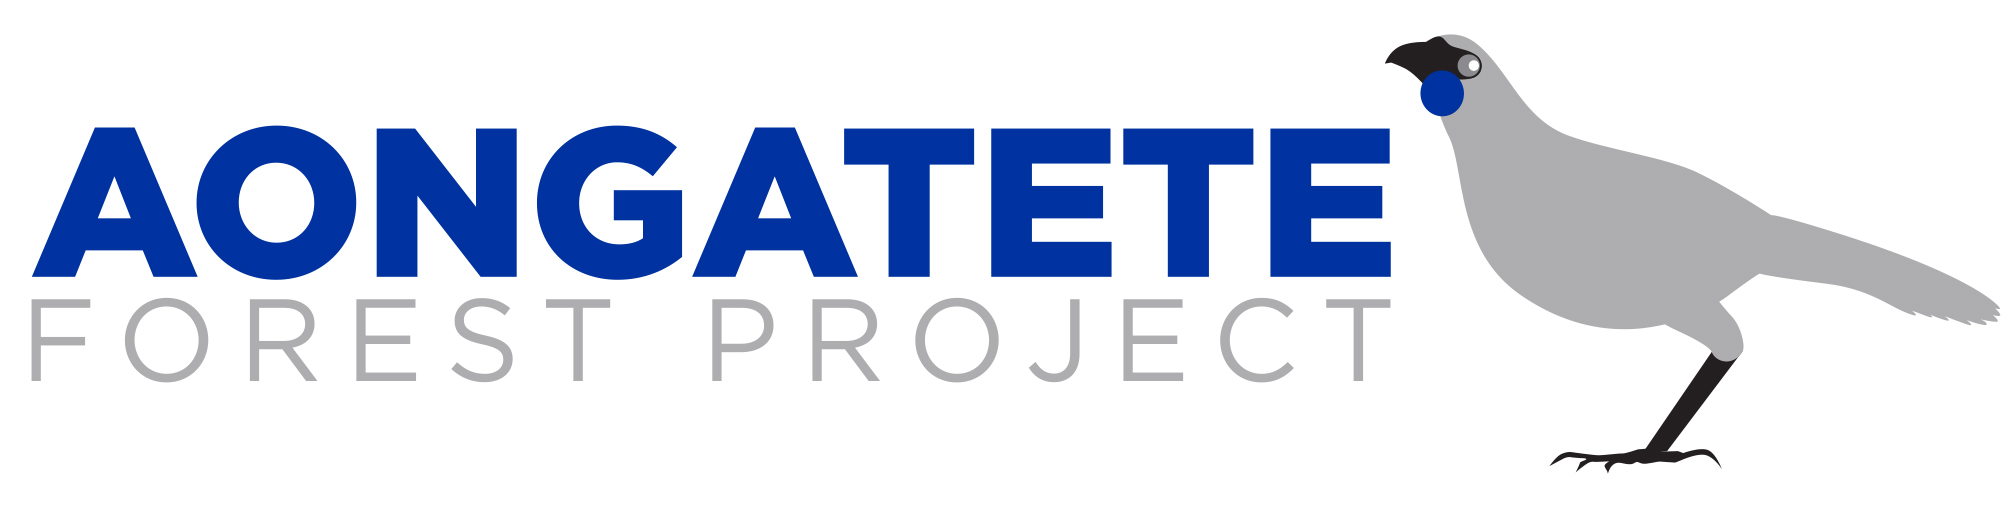 Aongatete forest project